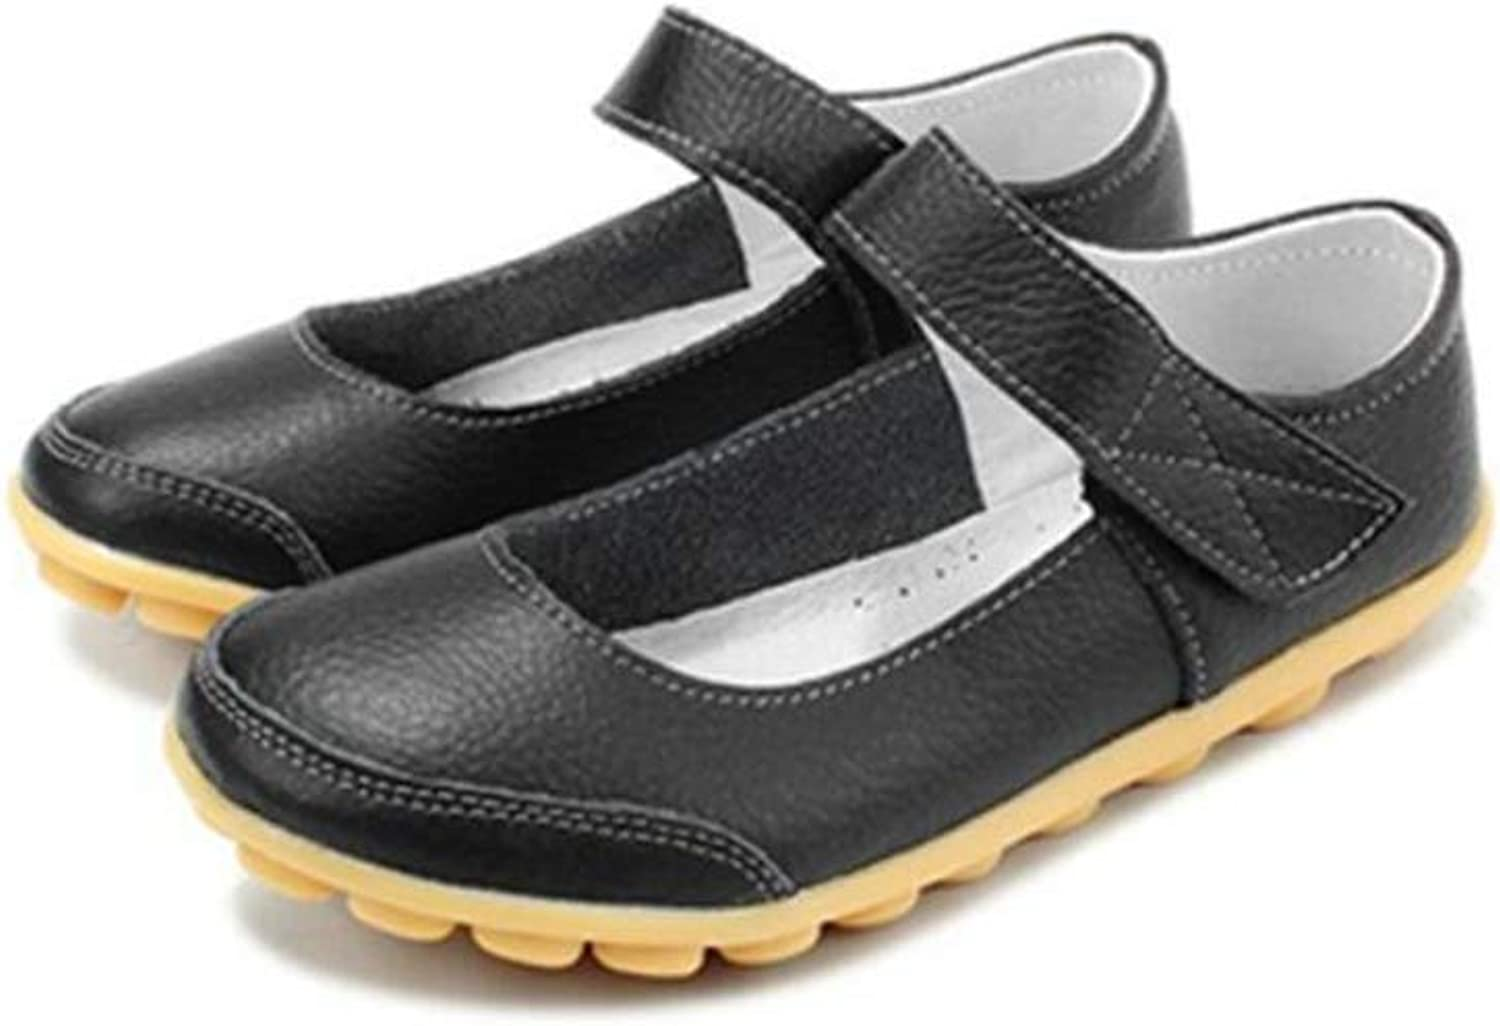 GUJMin Flat shoes Women's shoes Shallow Mouth Casual shoes Mother shoes Running shoes